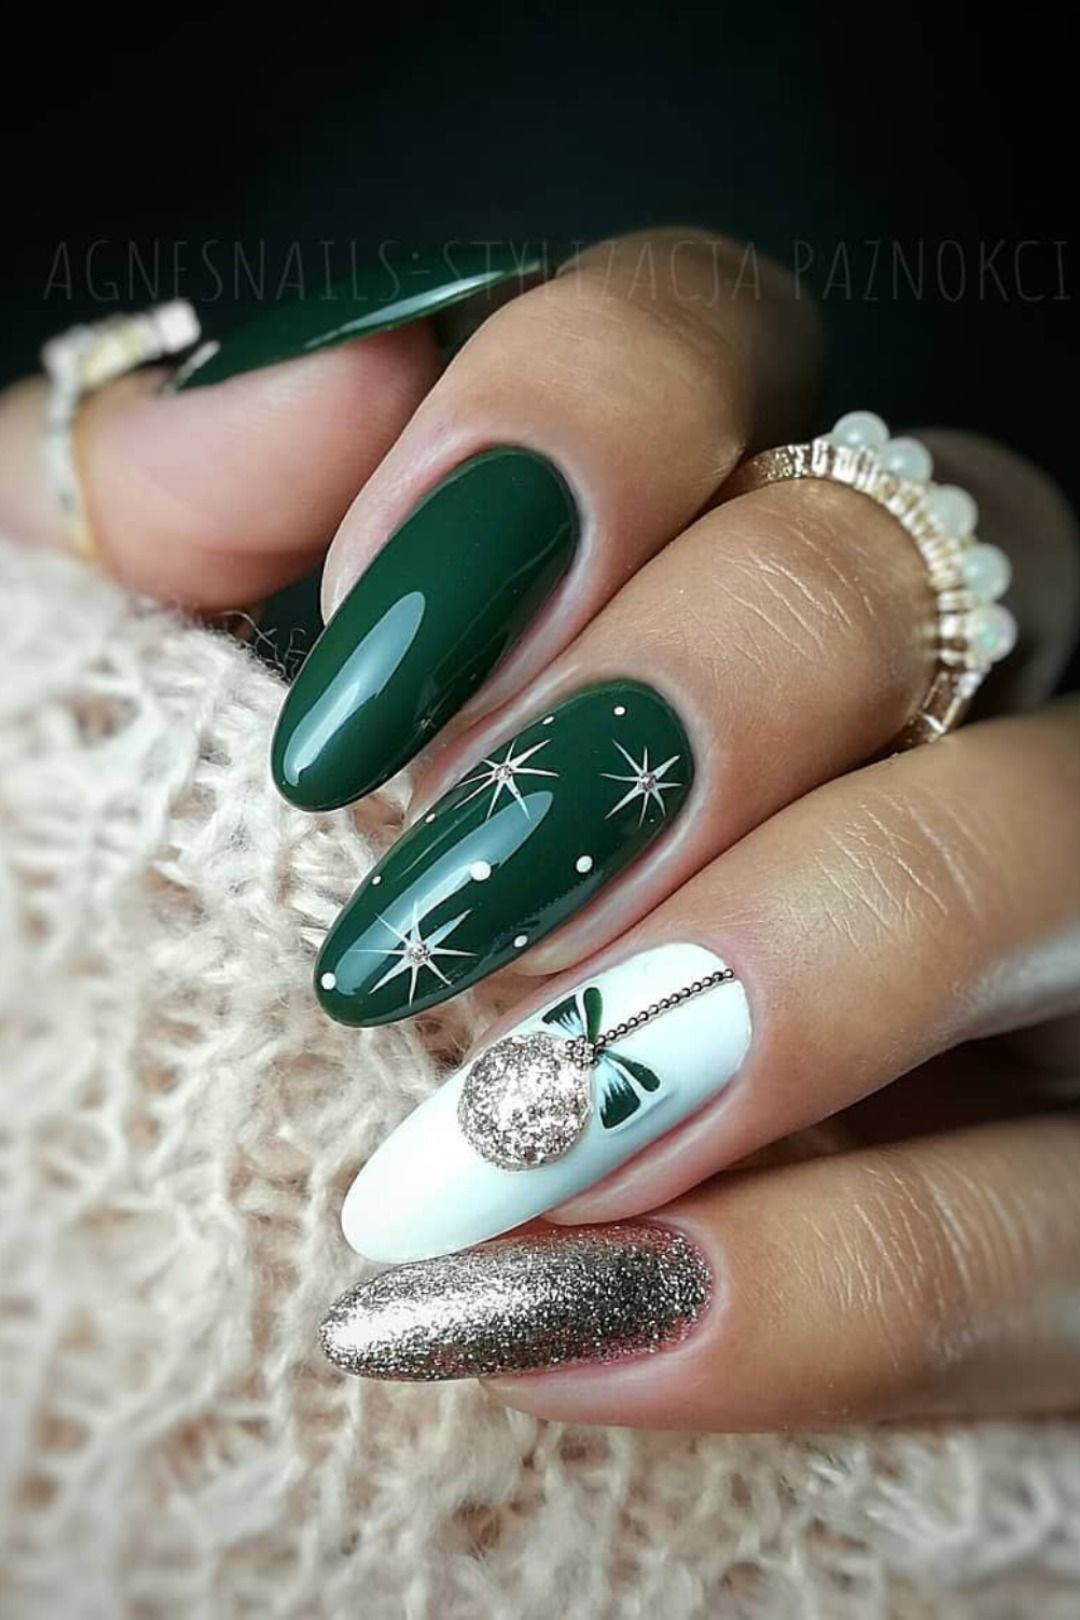 Beautiful Green Christmas Nails With White Snowflakes And Glitter Design Christmasnails Christmasnail Cute Christmas Nails Xmas Nails Christmas Nail Designs